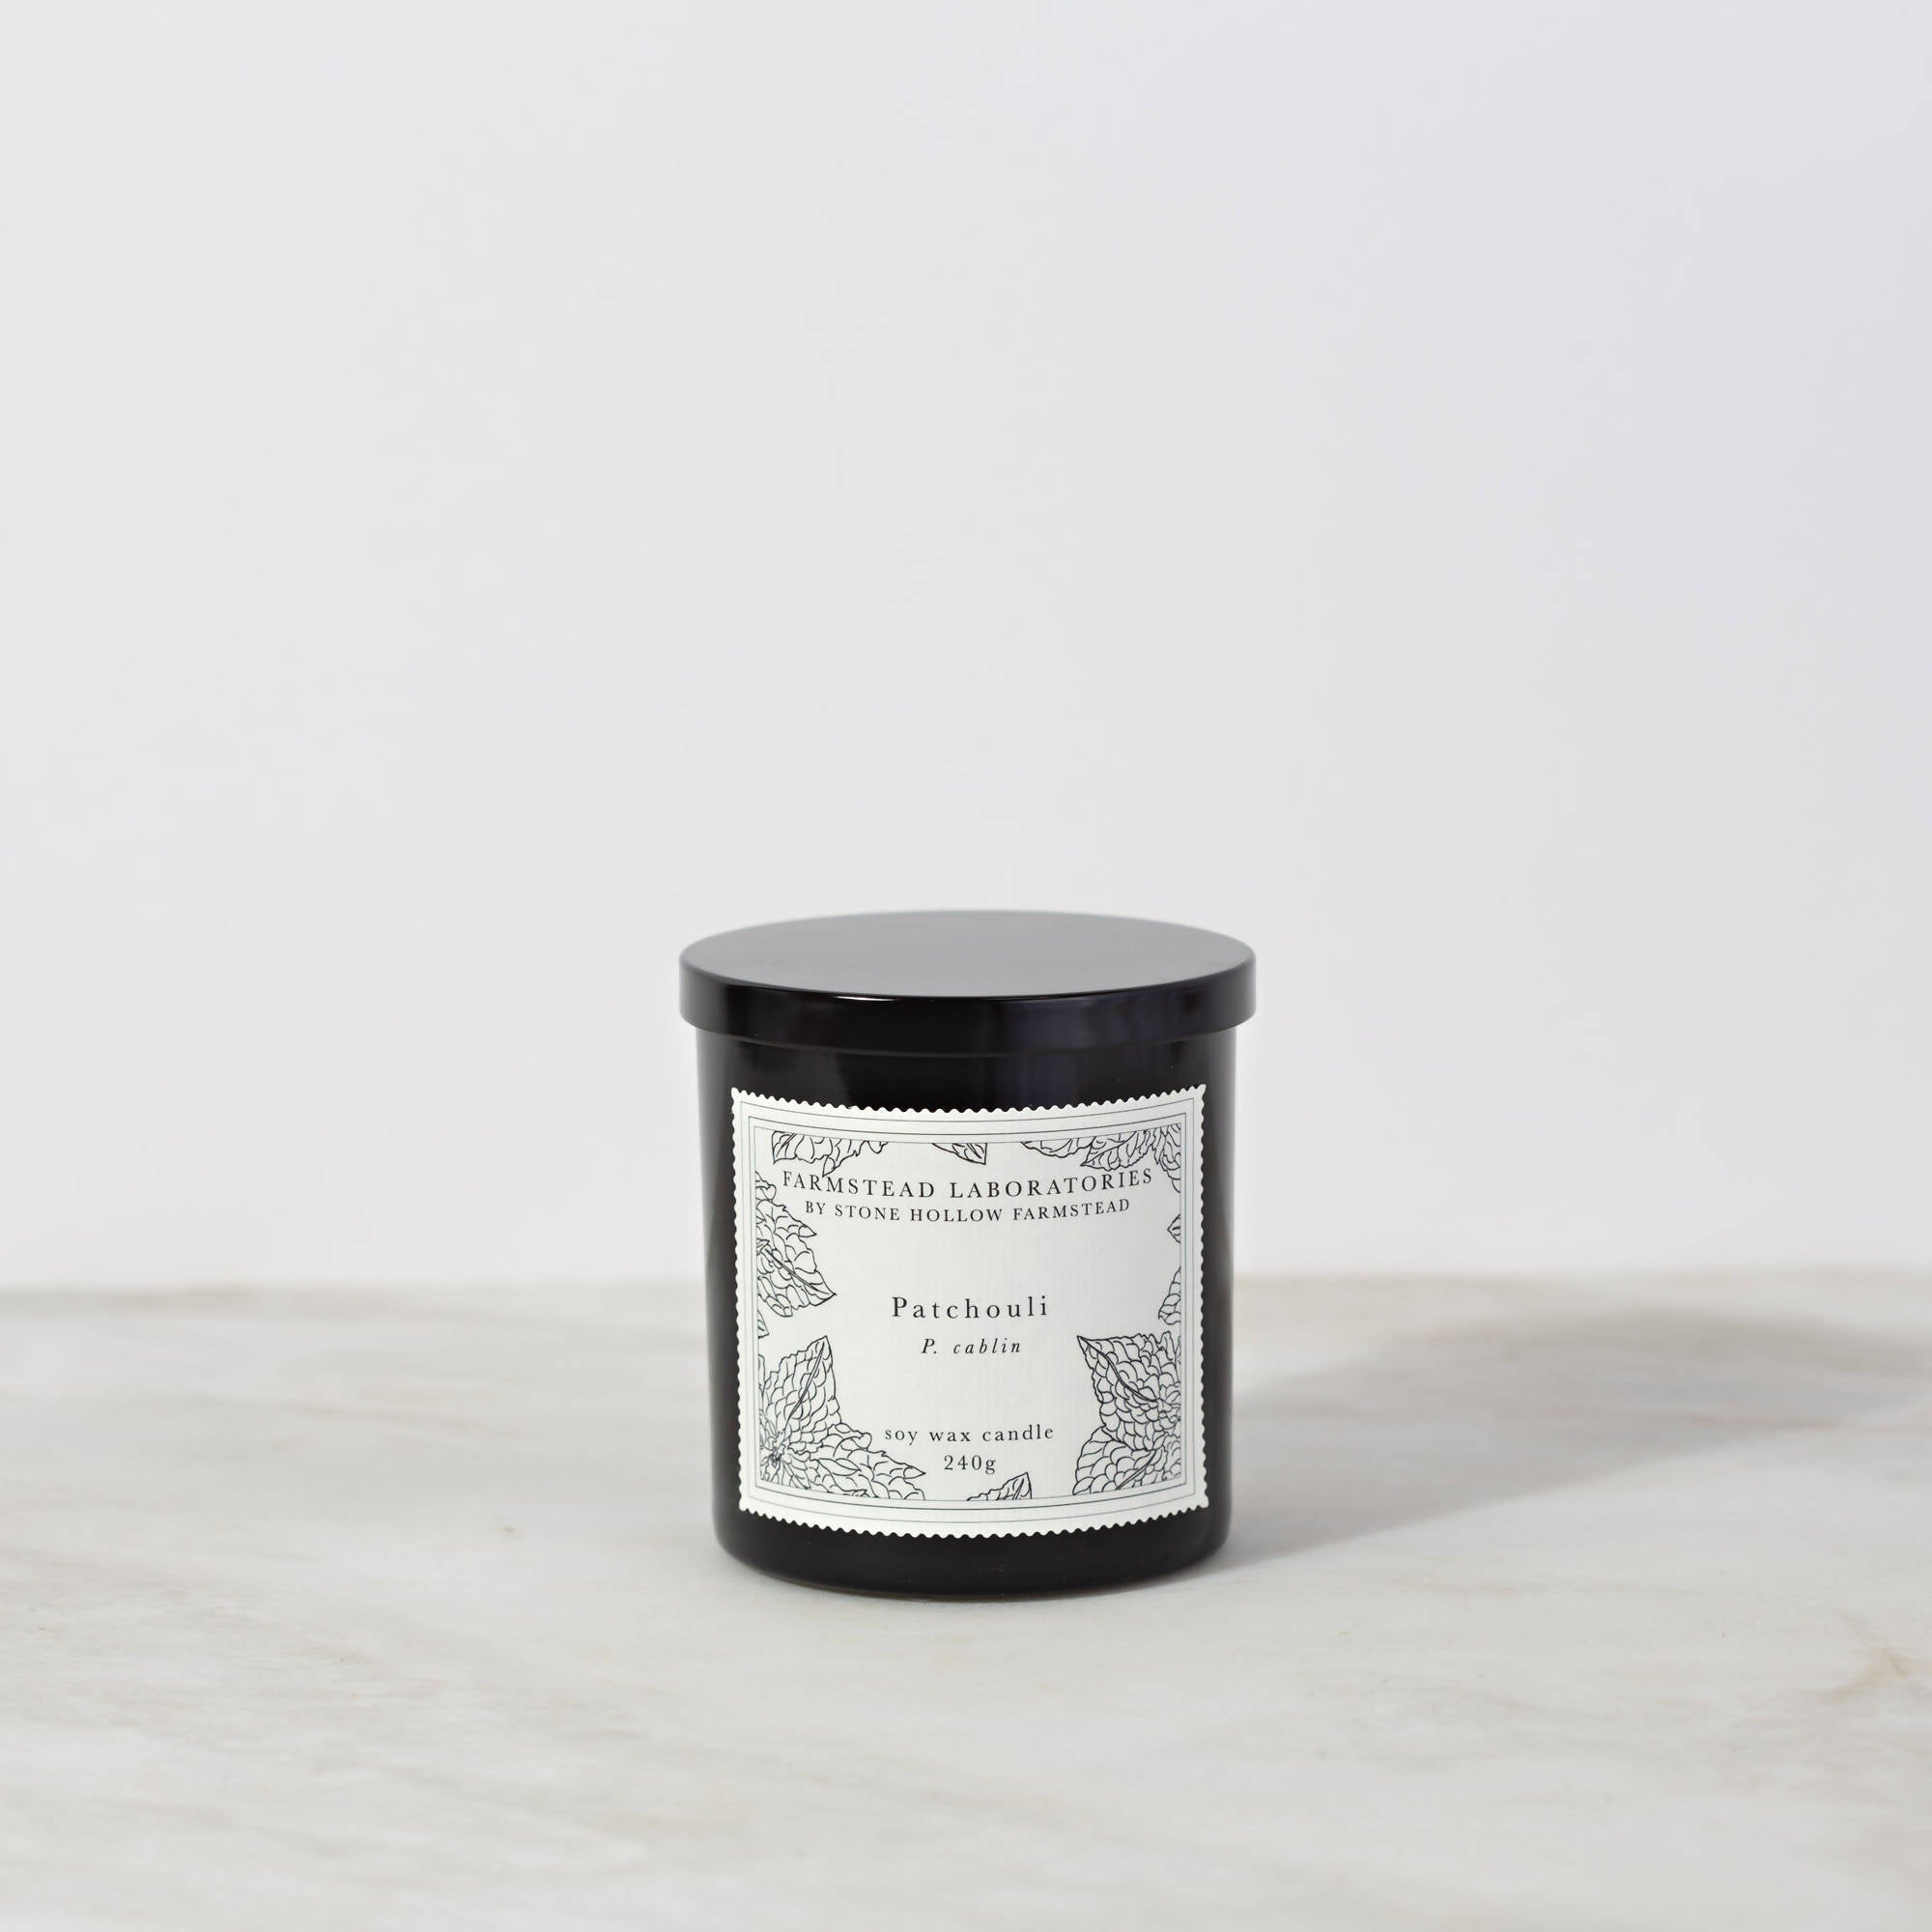 BOTANICAL SOY WAX CANDLE / PATCHOULI